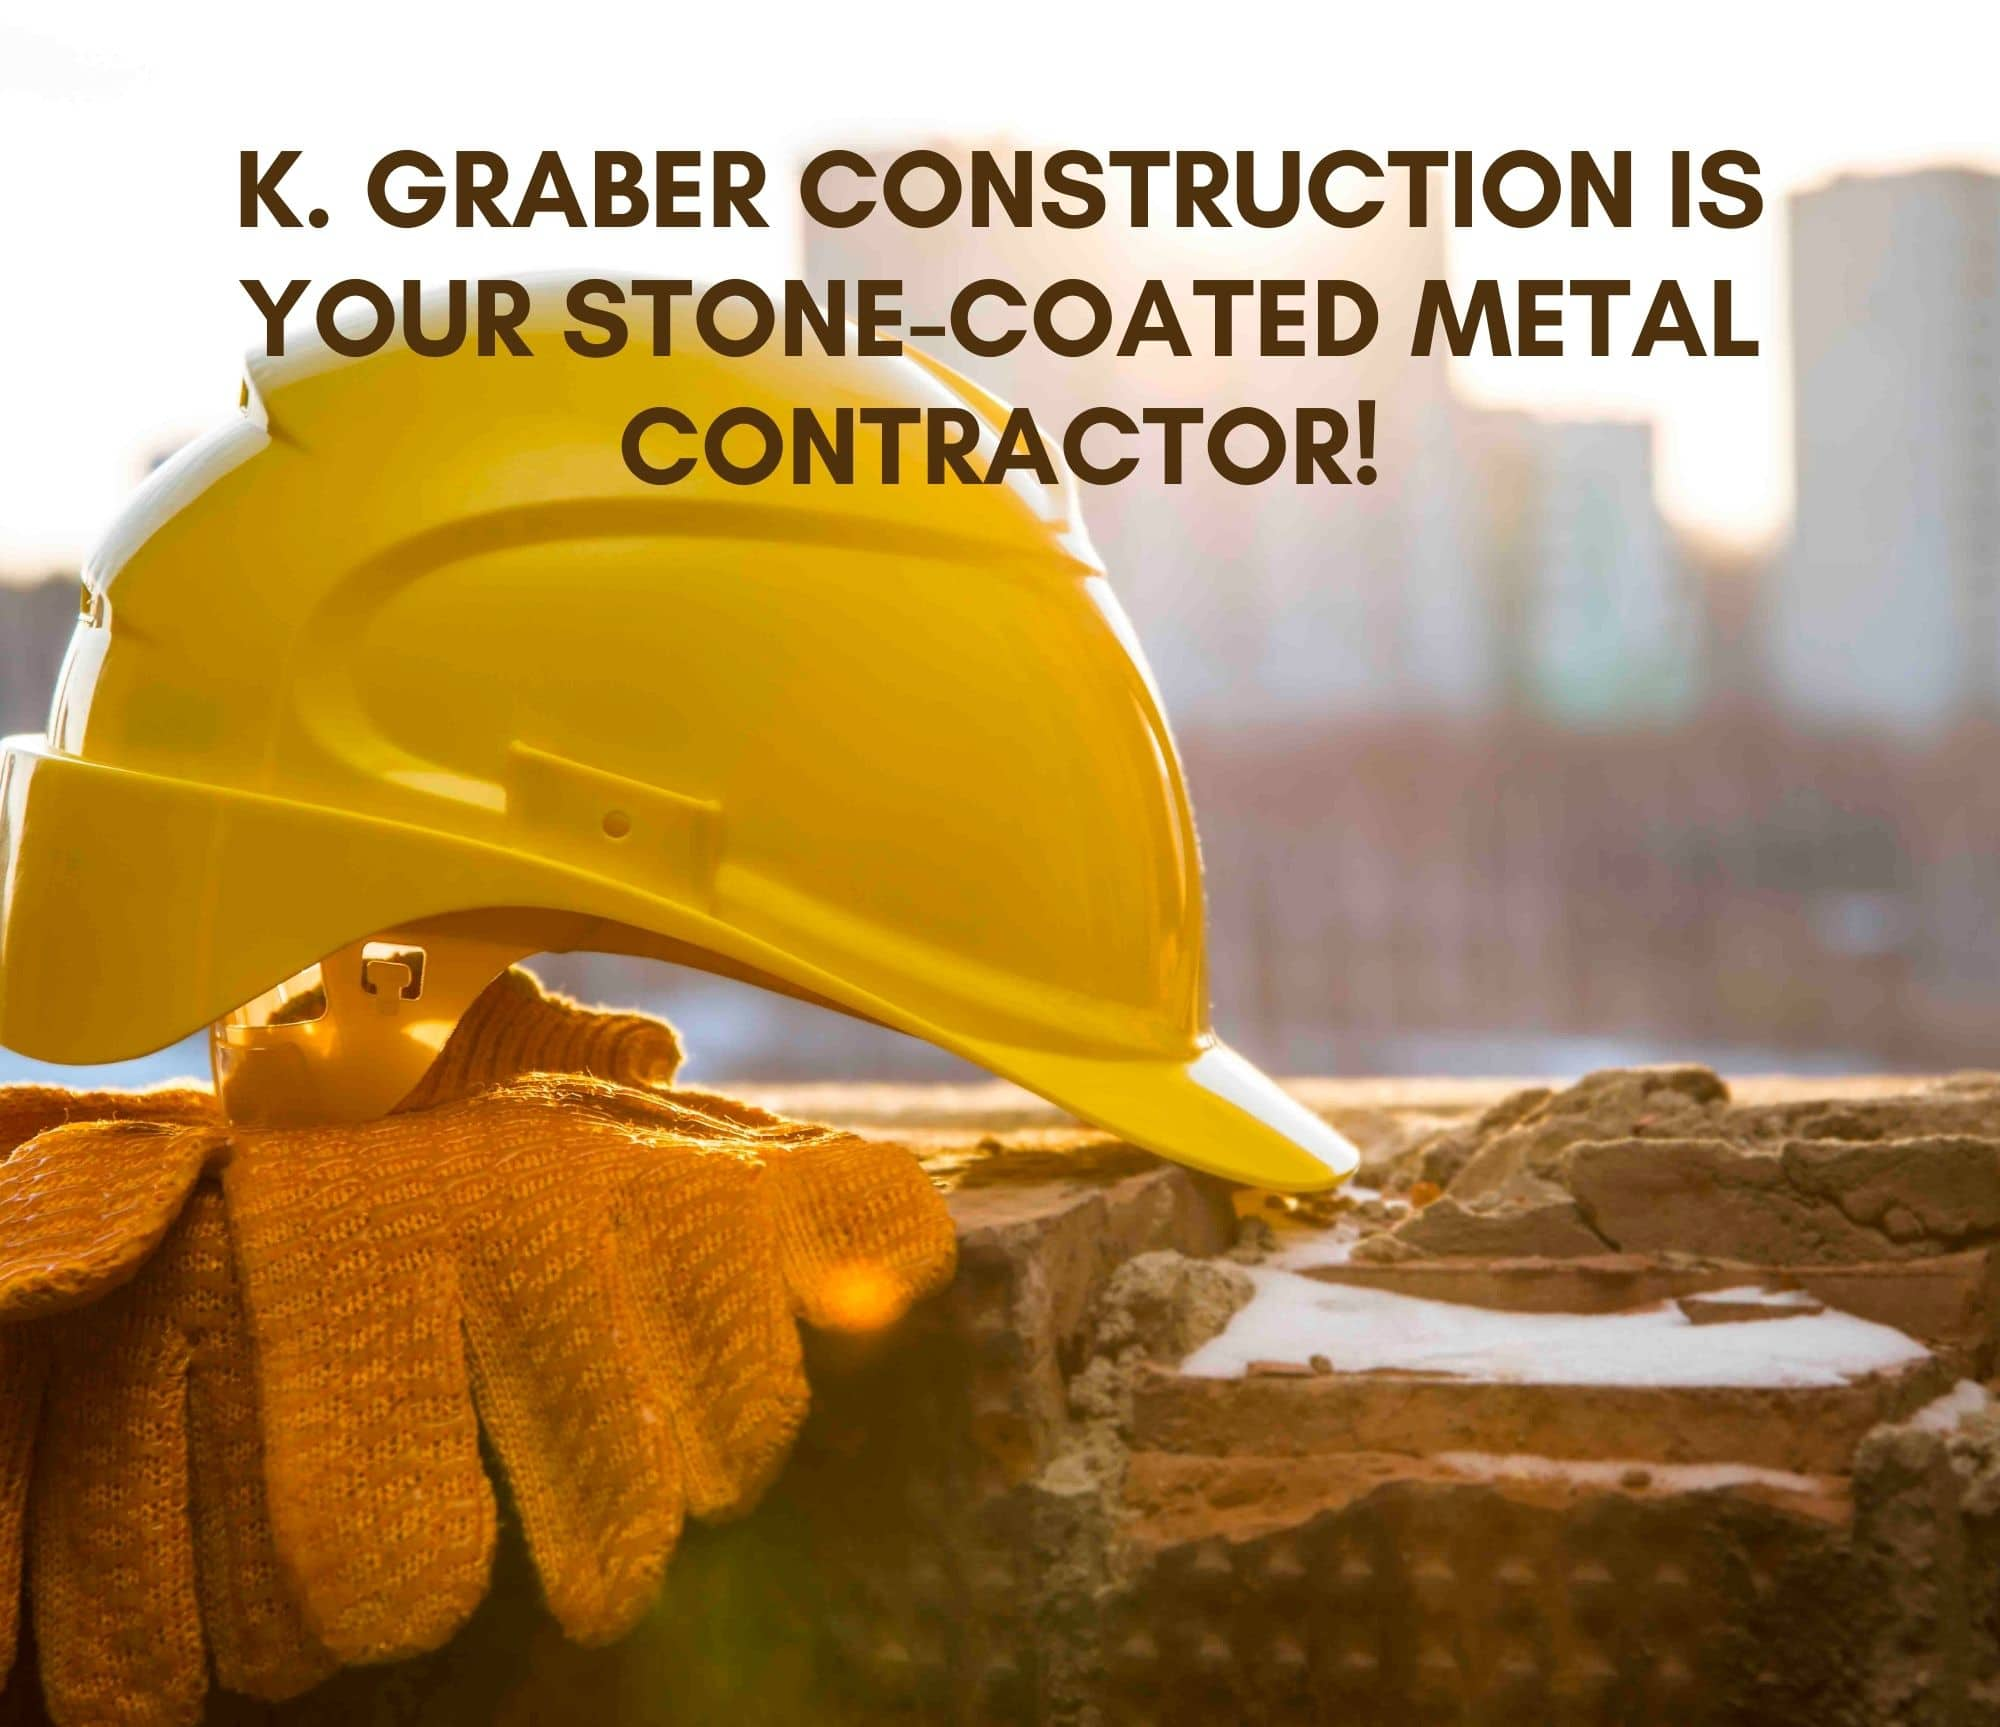 K Graber Construction is a stone coated metal roofing contractor